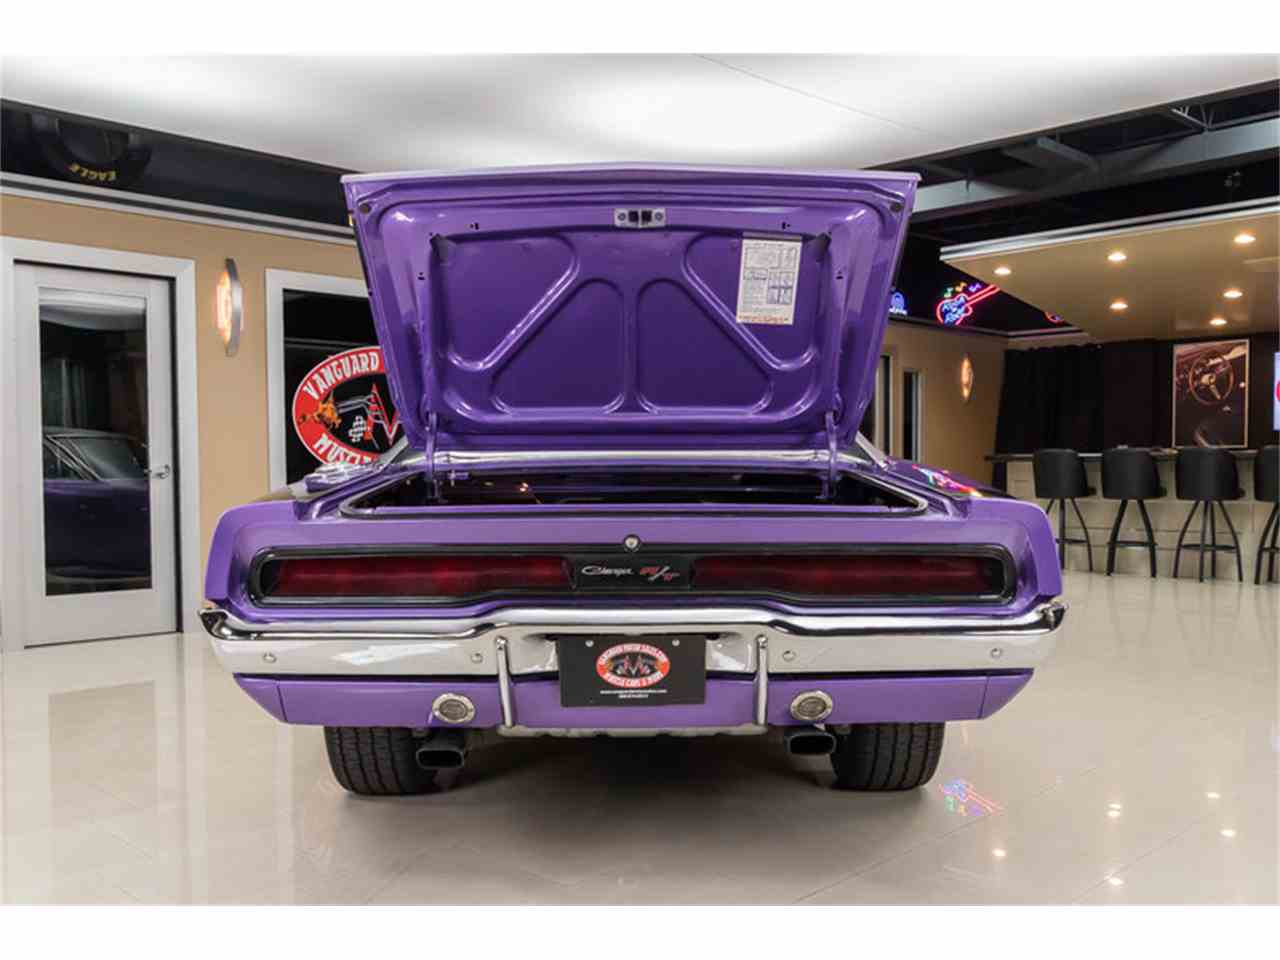 1970 dodge charger r t for sale cc 1046598 for Vanguard motors plymouth michigan